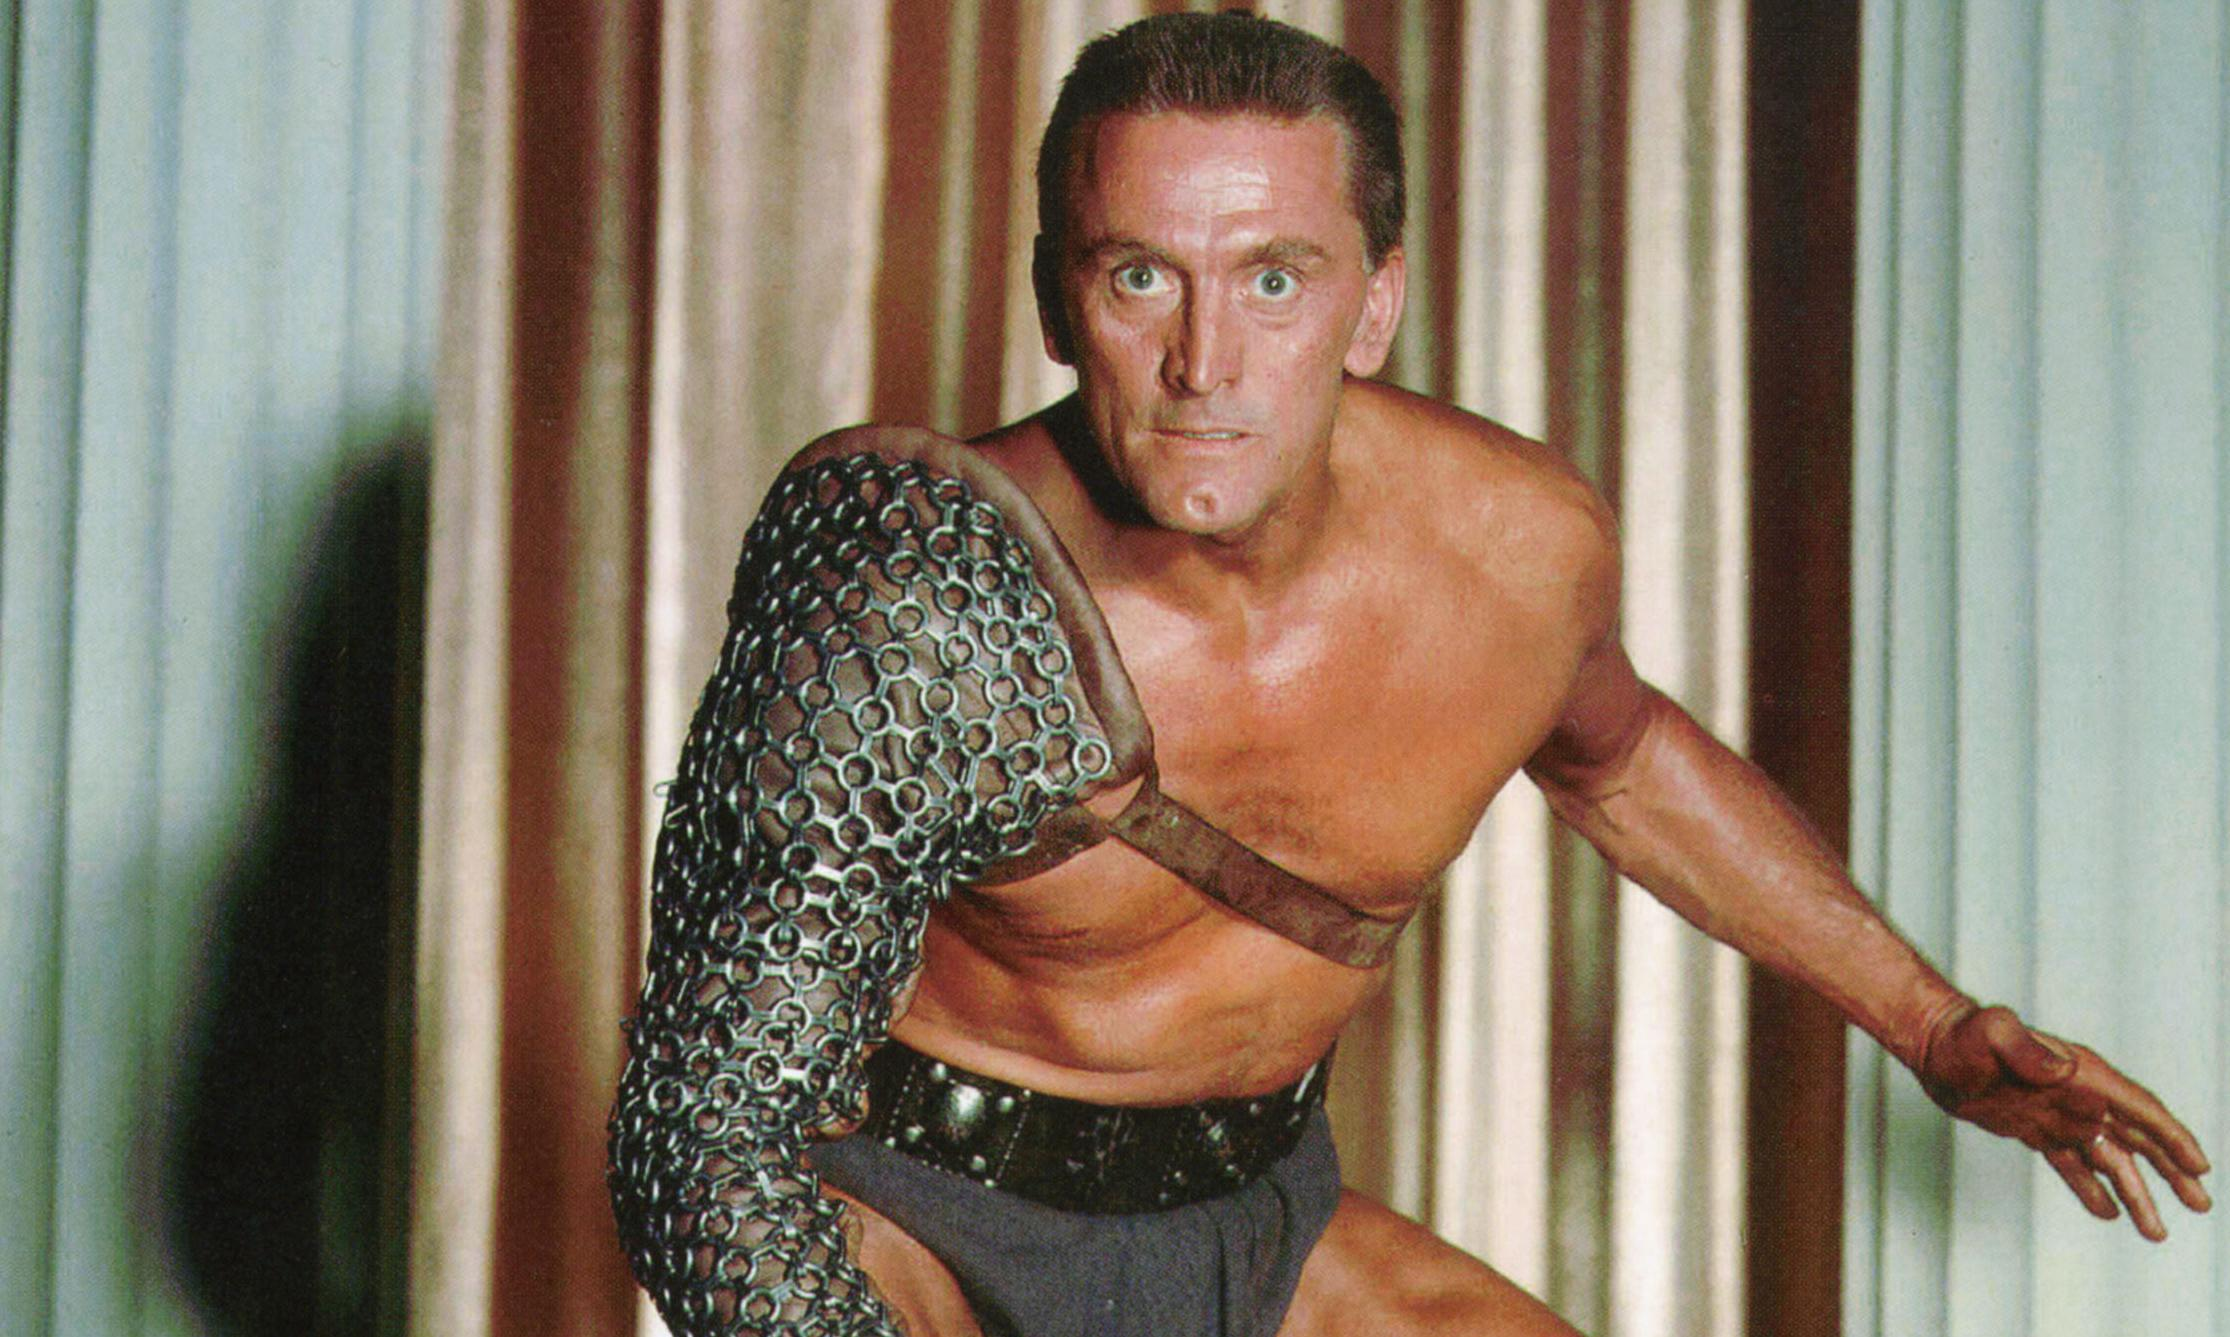 Kirk Douglas, Hollywood legend and star of Spartacus, dies aged 103